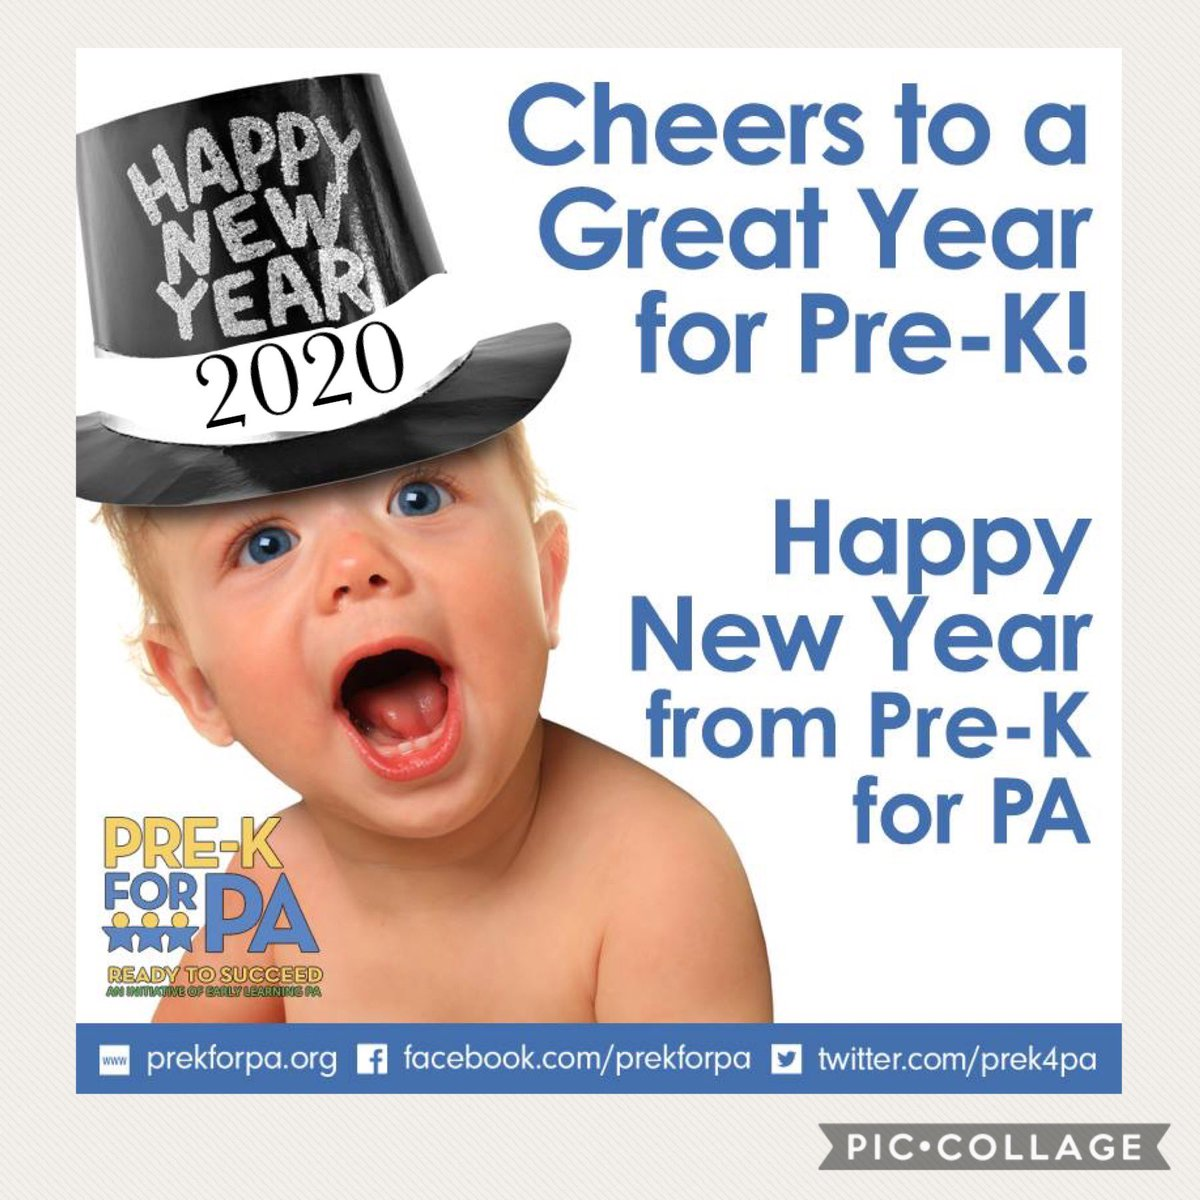 #HappyNewYear and cheers to a successful 2020!